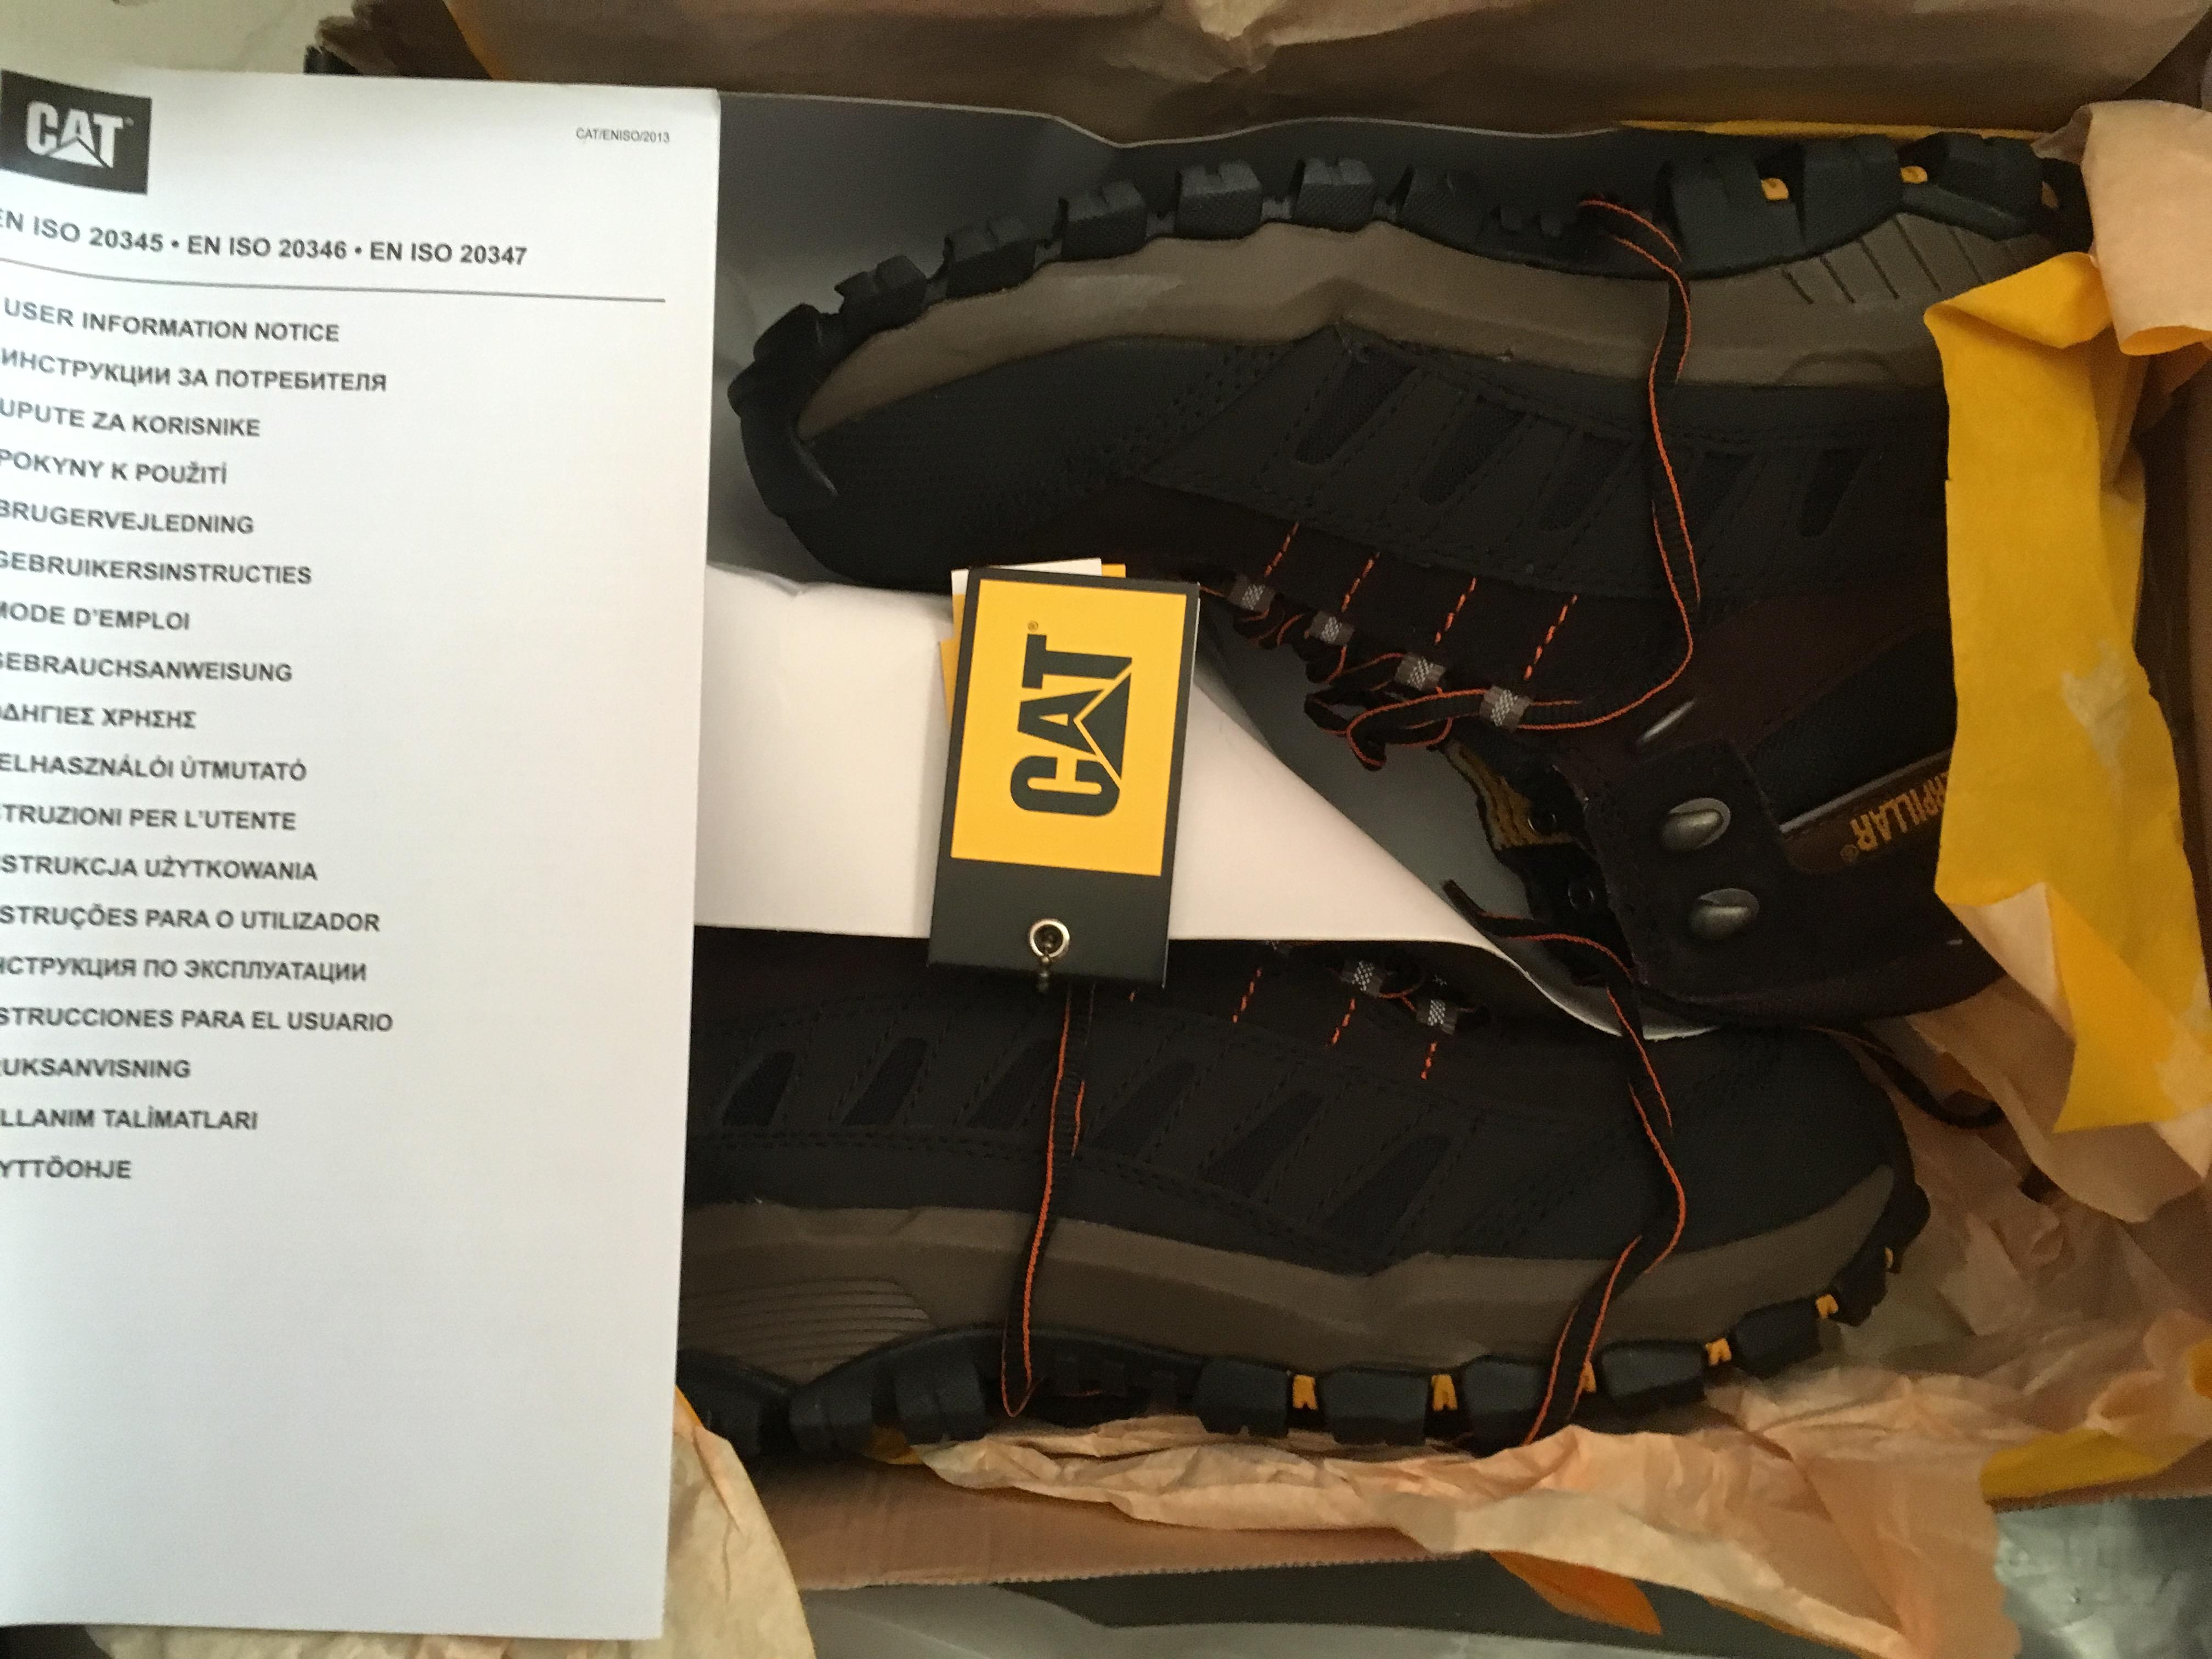 Brand New Cat Caterpillar Safety Shoes With Steel Toe In Boxed Packing Half Unwanted Gift Qatar Living